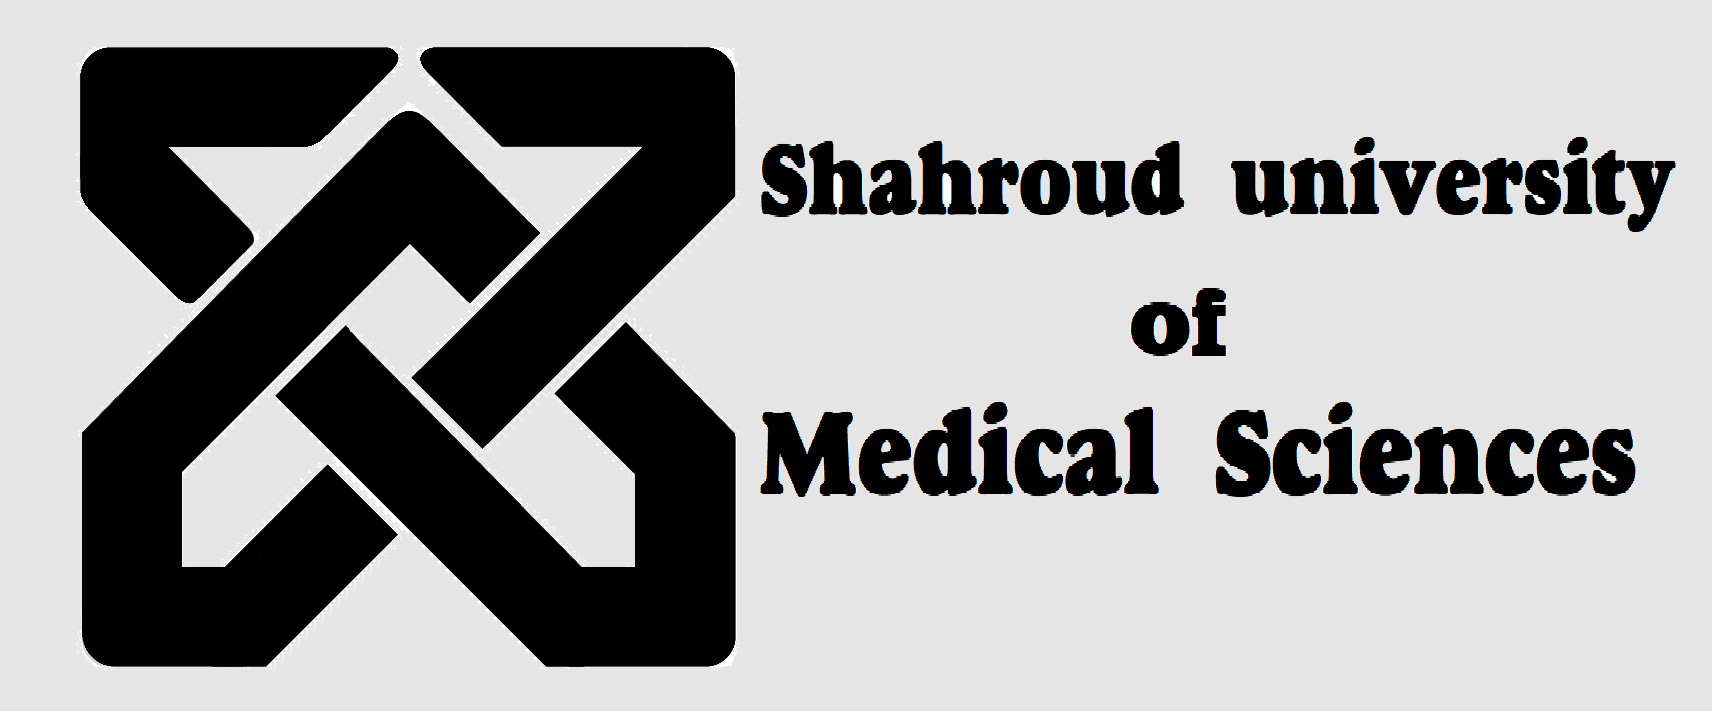 Shahroud University of Medical Sciences